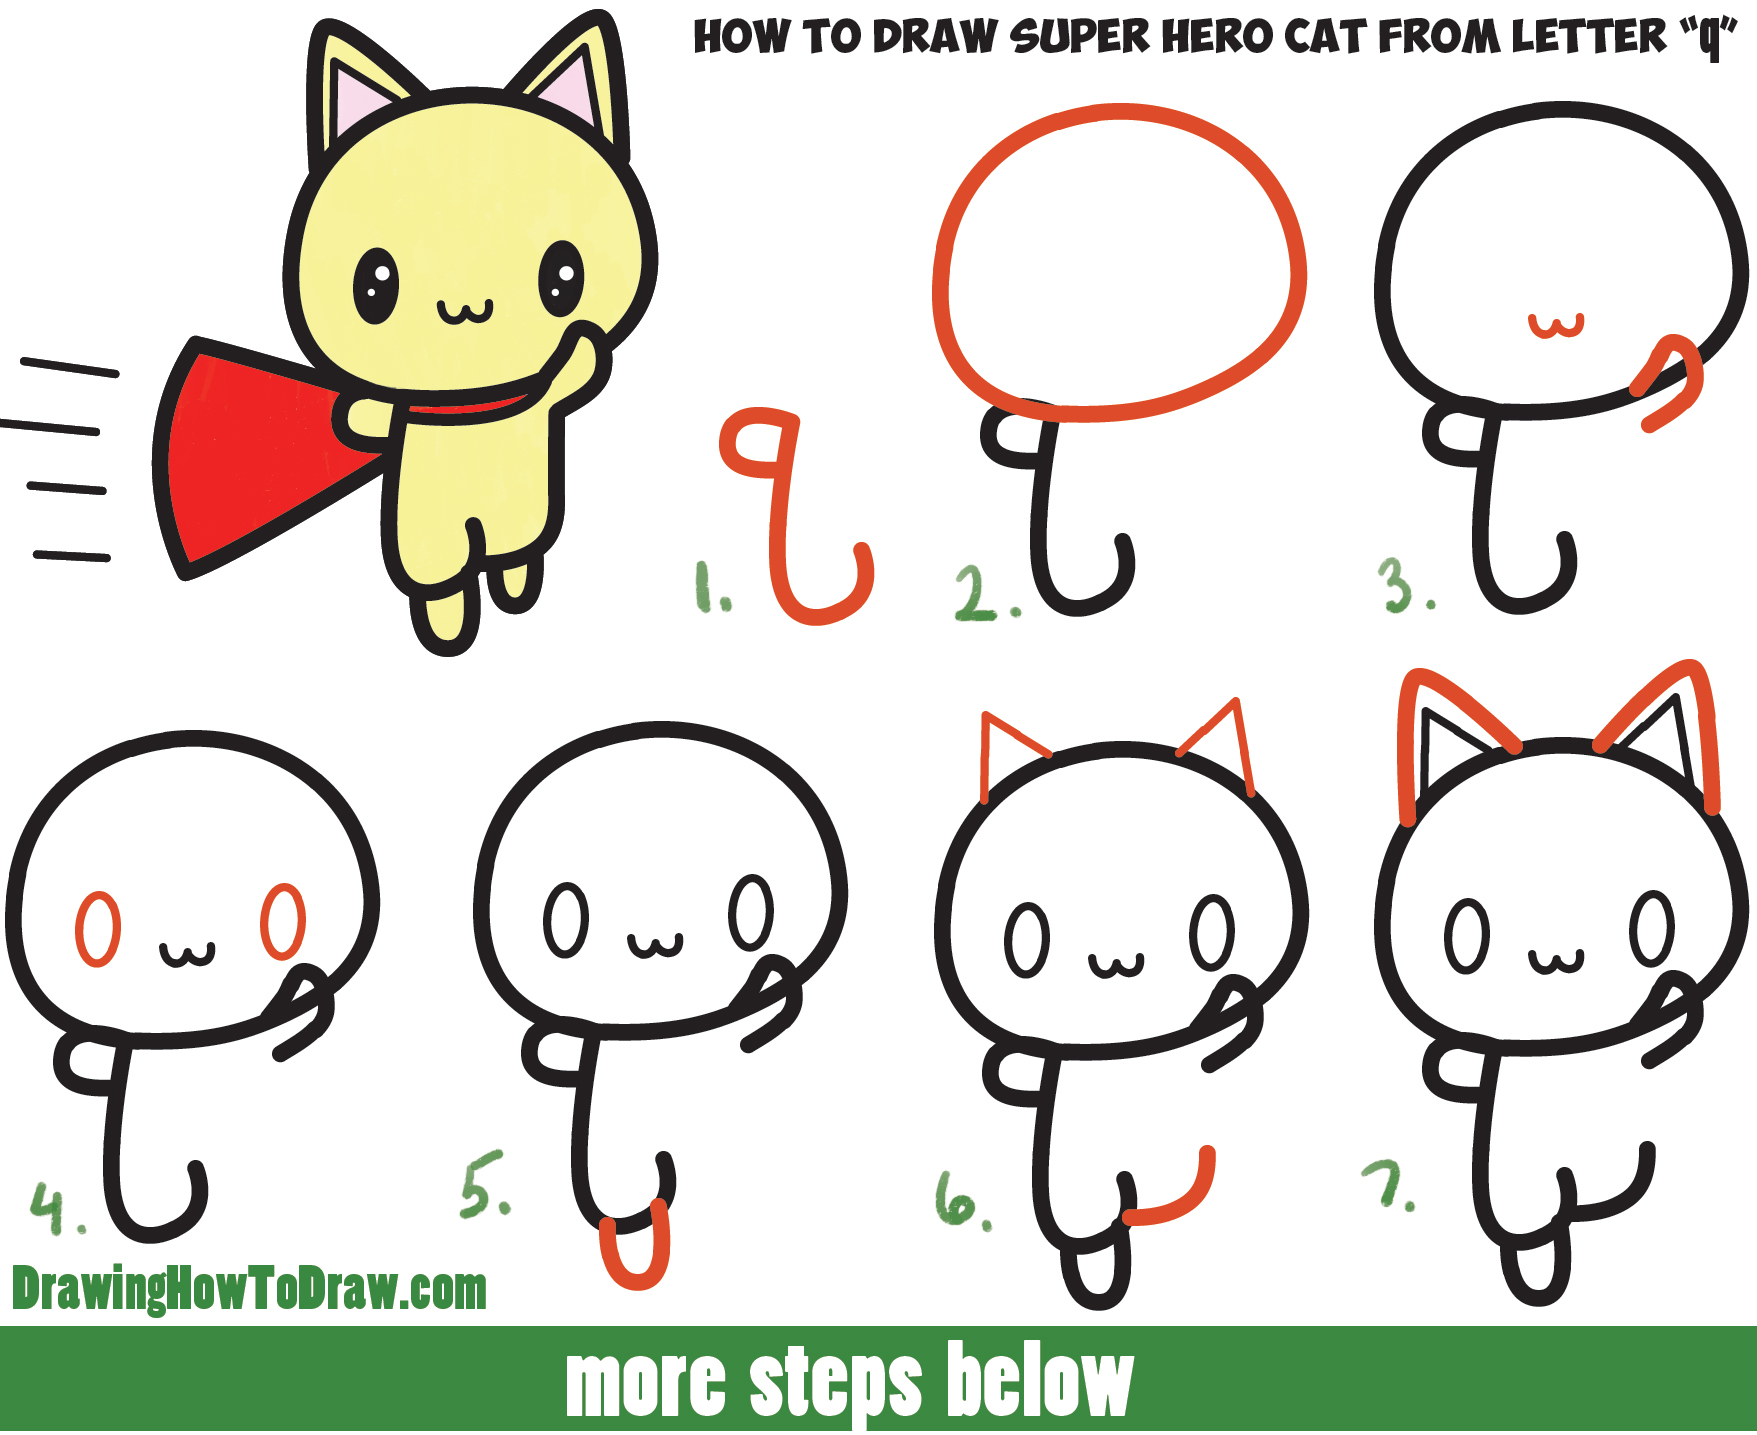 How to Draw a Cute Cat Super Hero (Kawaii) with Easy Step by Step Drawing Tutorial for Kids & Beginners